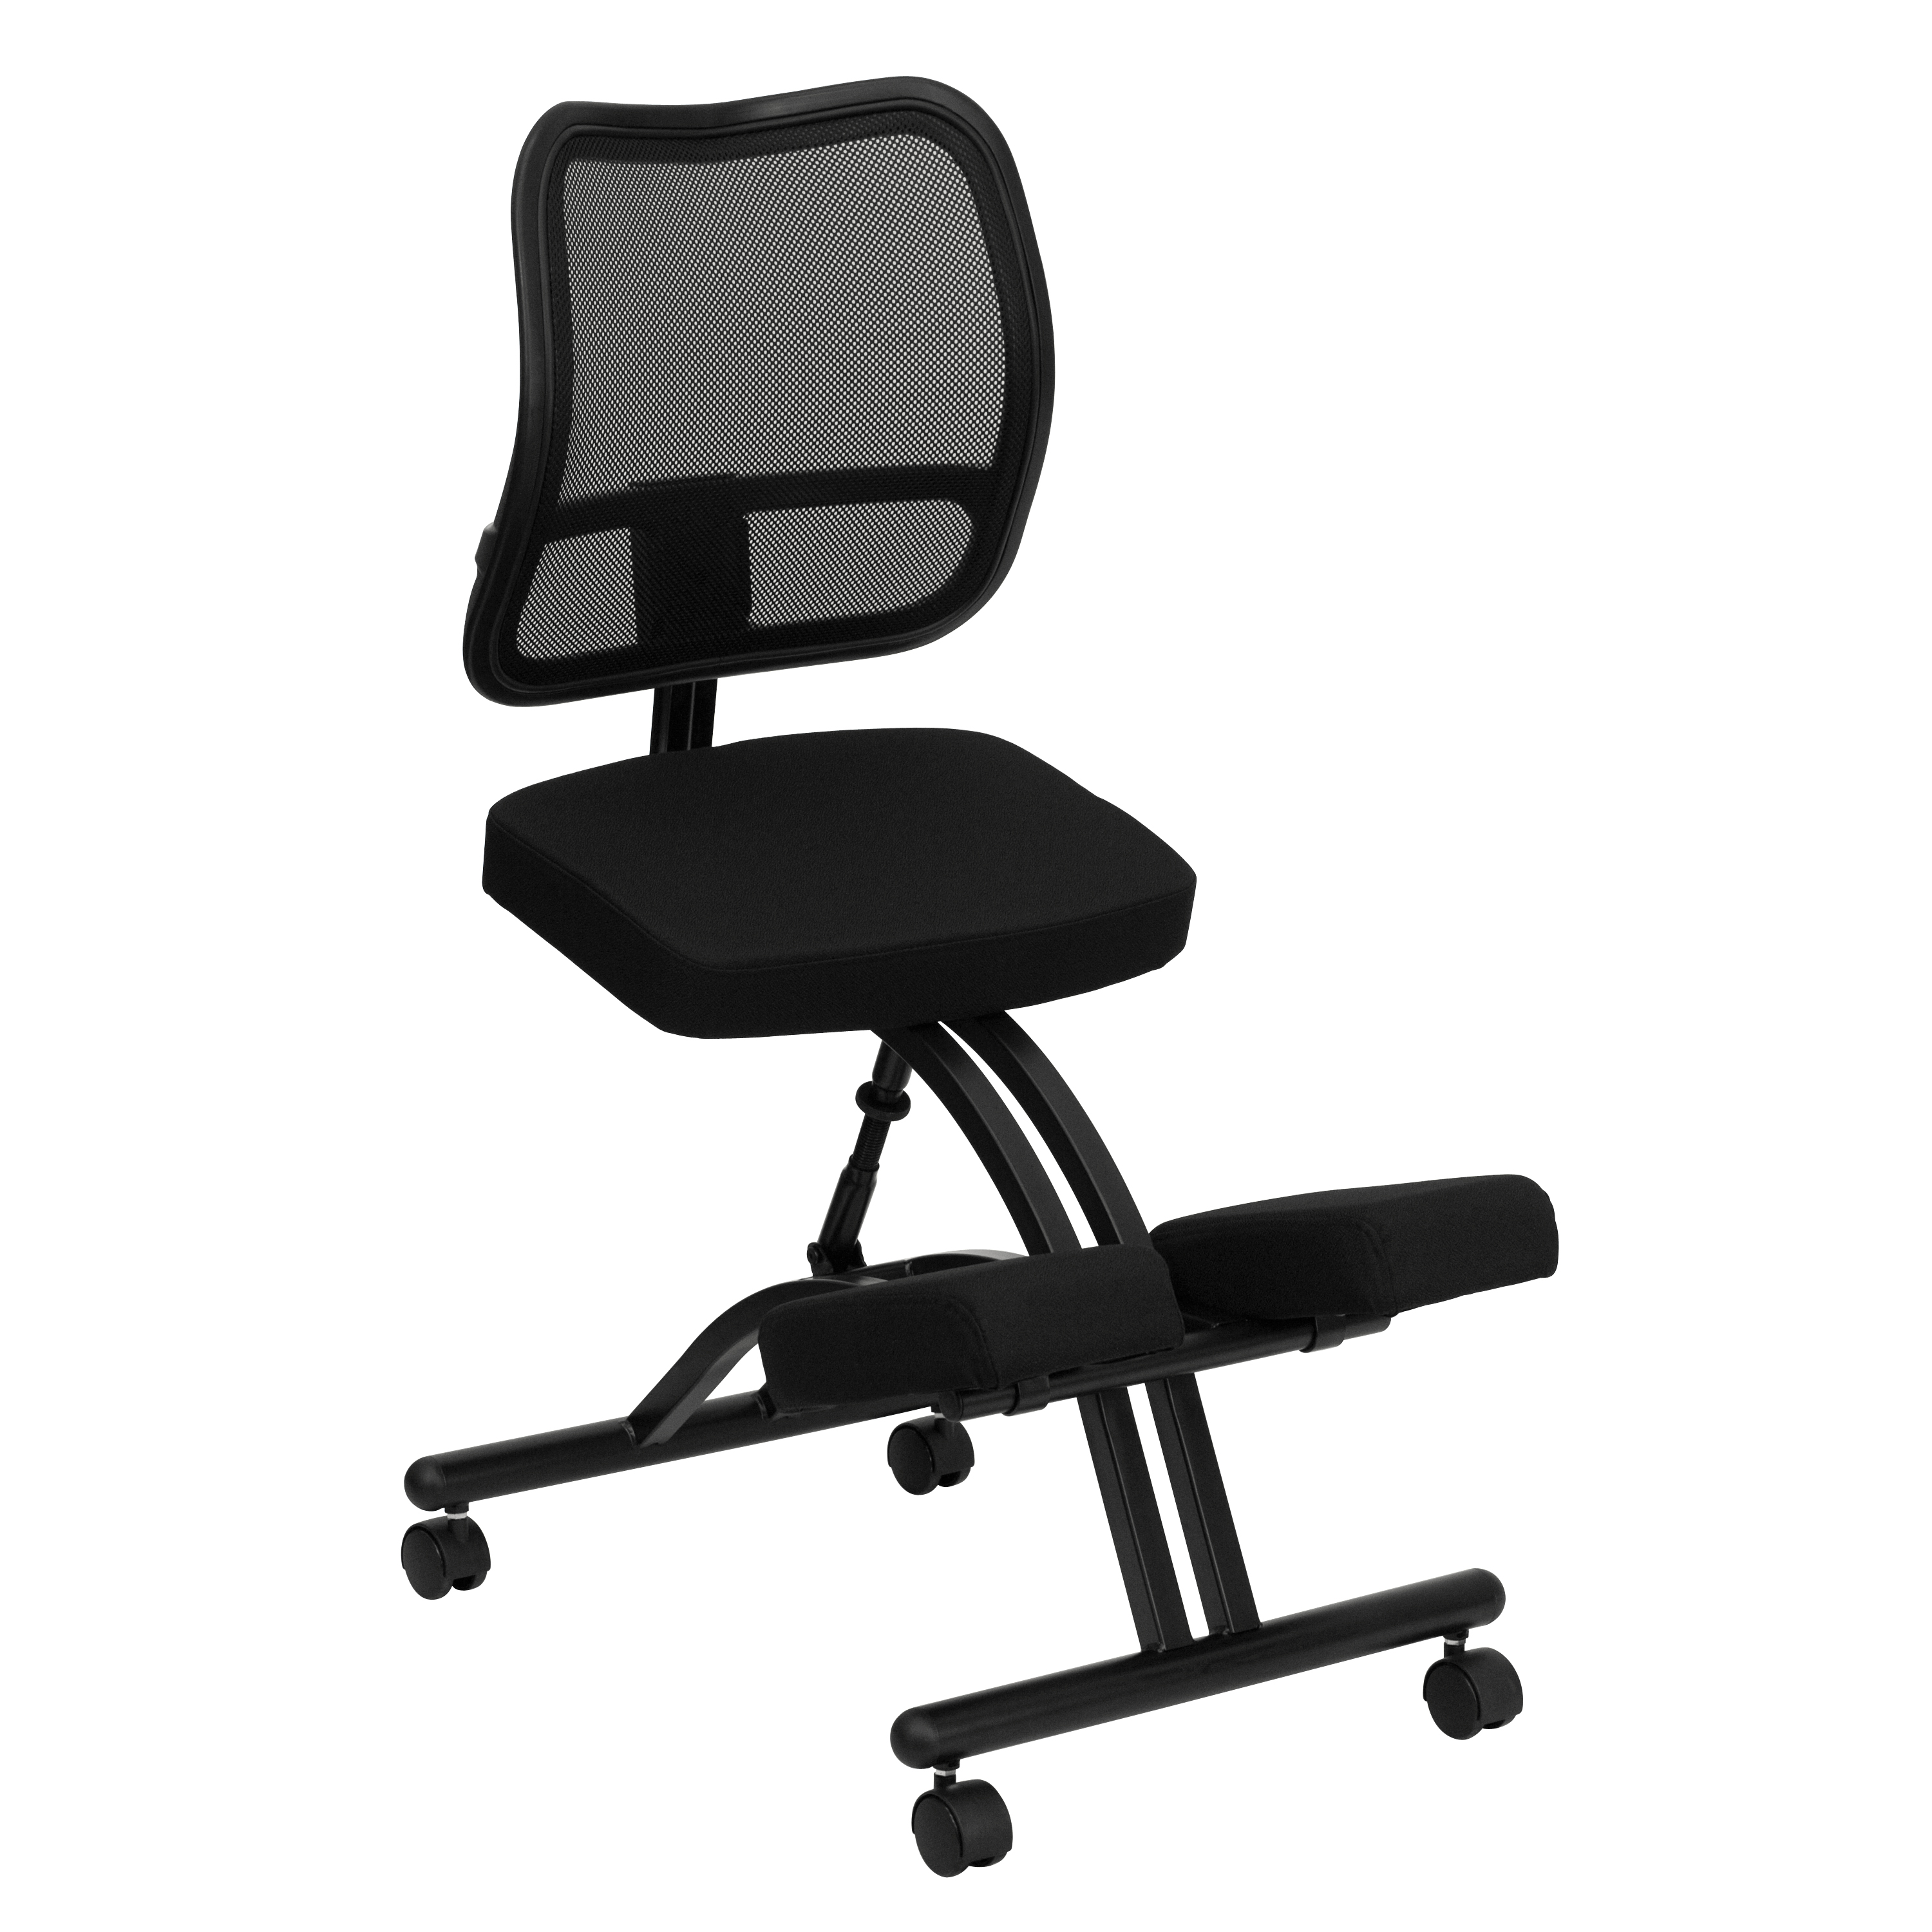 Ergonomic Chair Kneeling Flash Furniture Mobile Ergonomic Kneeling Chair With Black